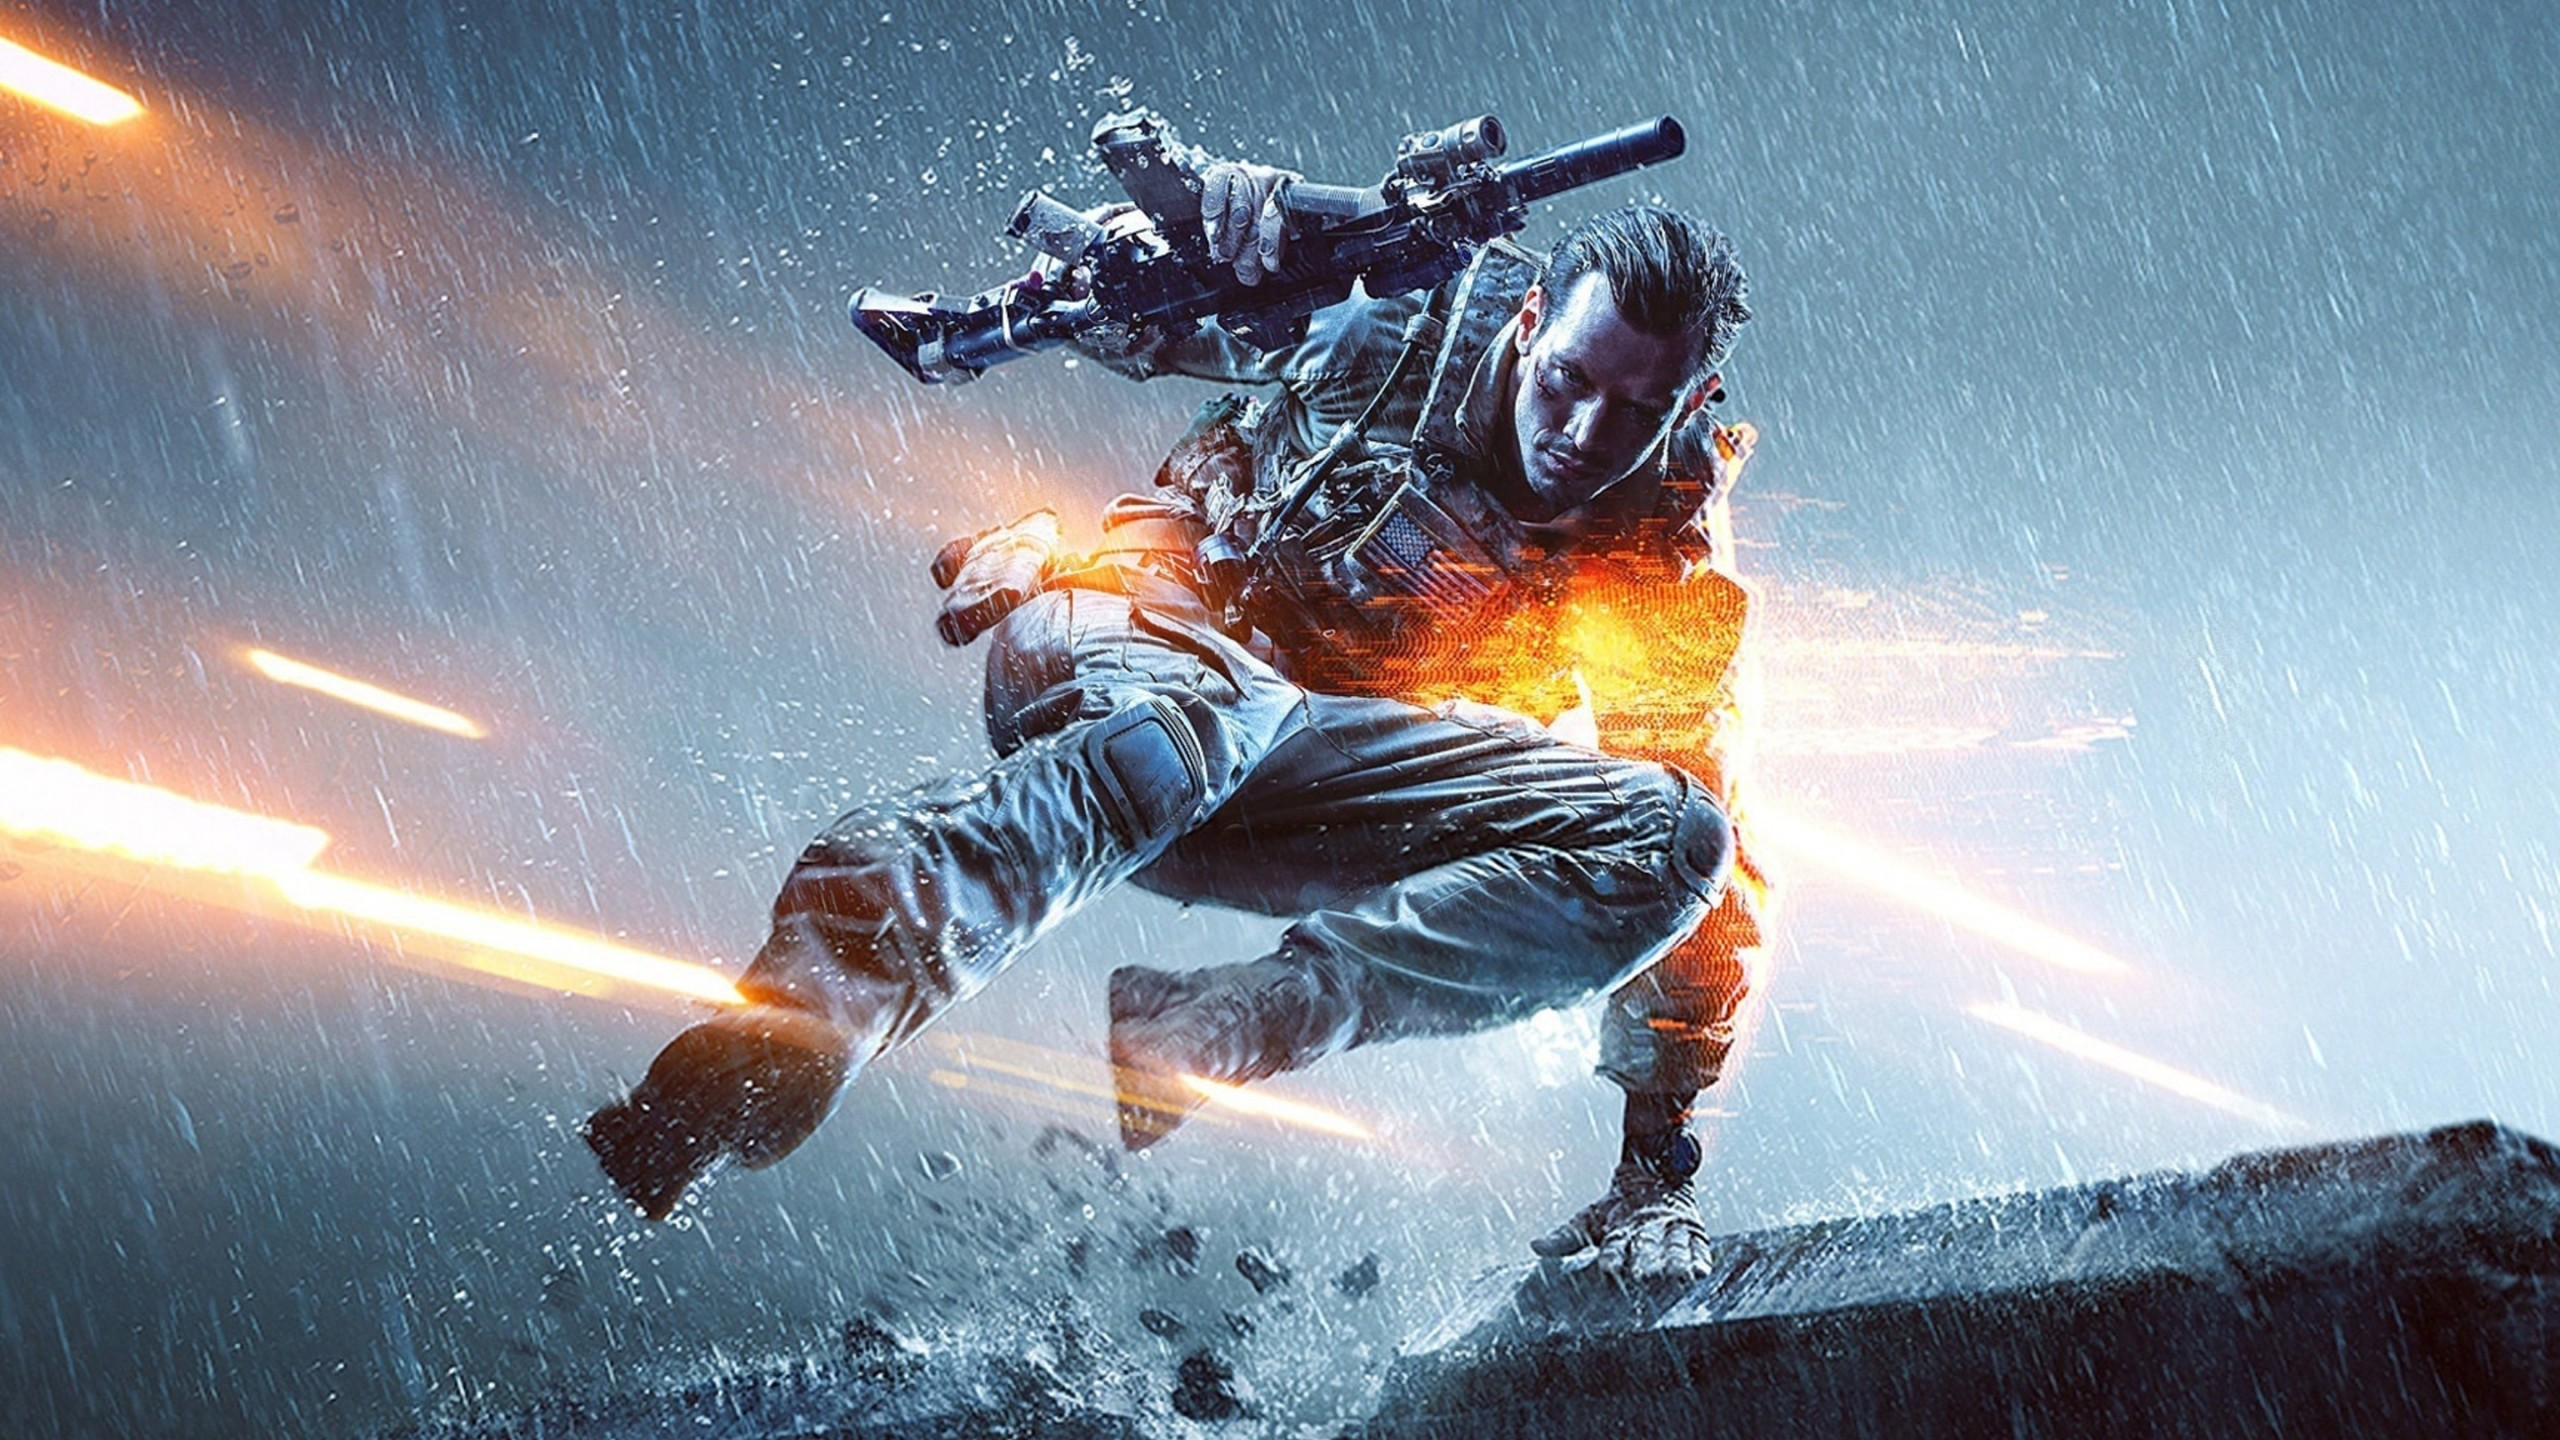 Battlefield 4 Wallpaper 2560X1440 wallpaper   1487221 2560x1440